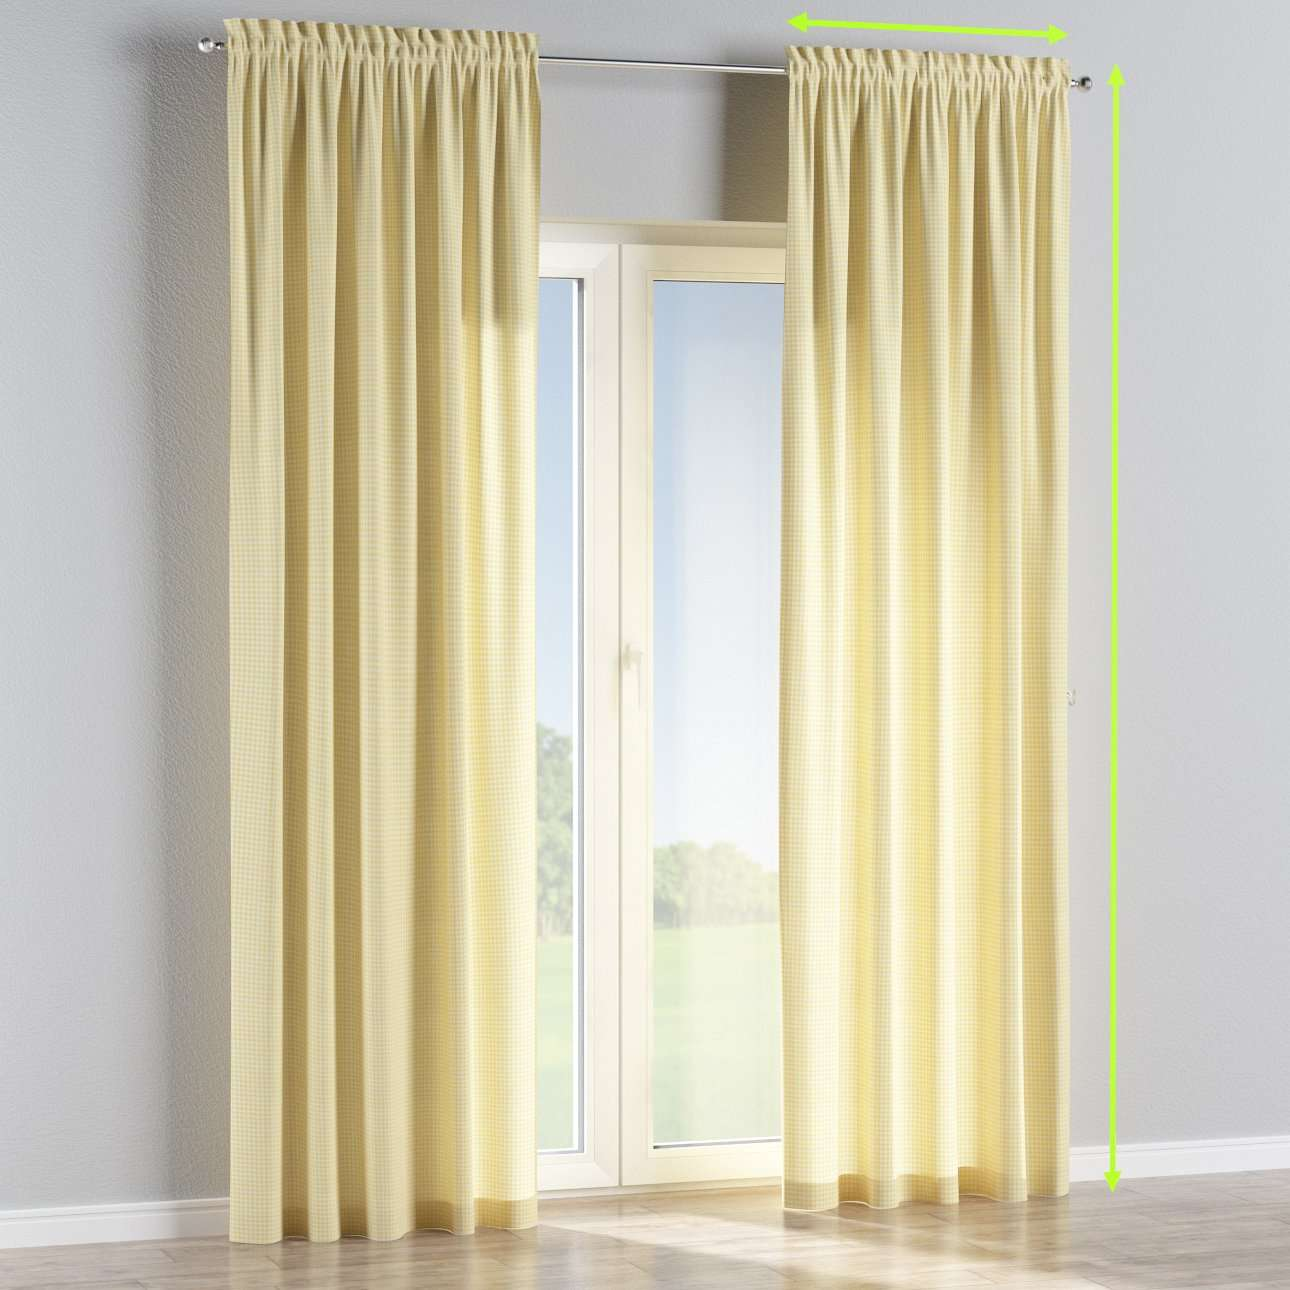 Slot and frill curtains in collection Ashley, fabric: 137-64